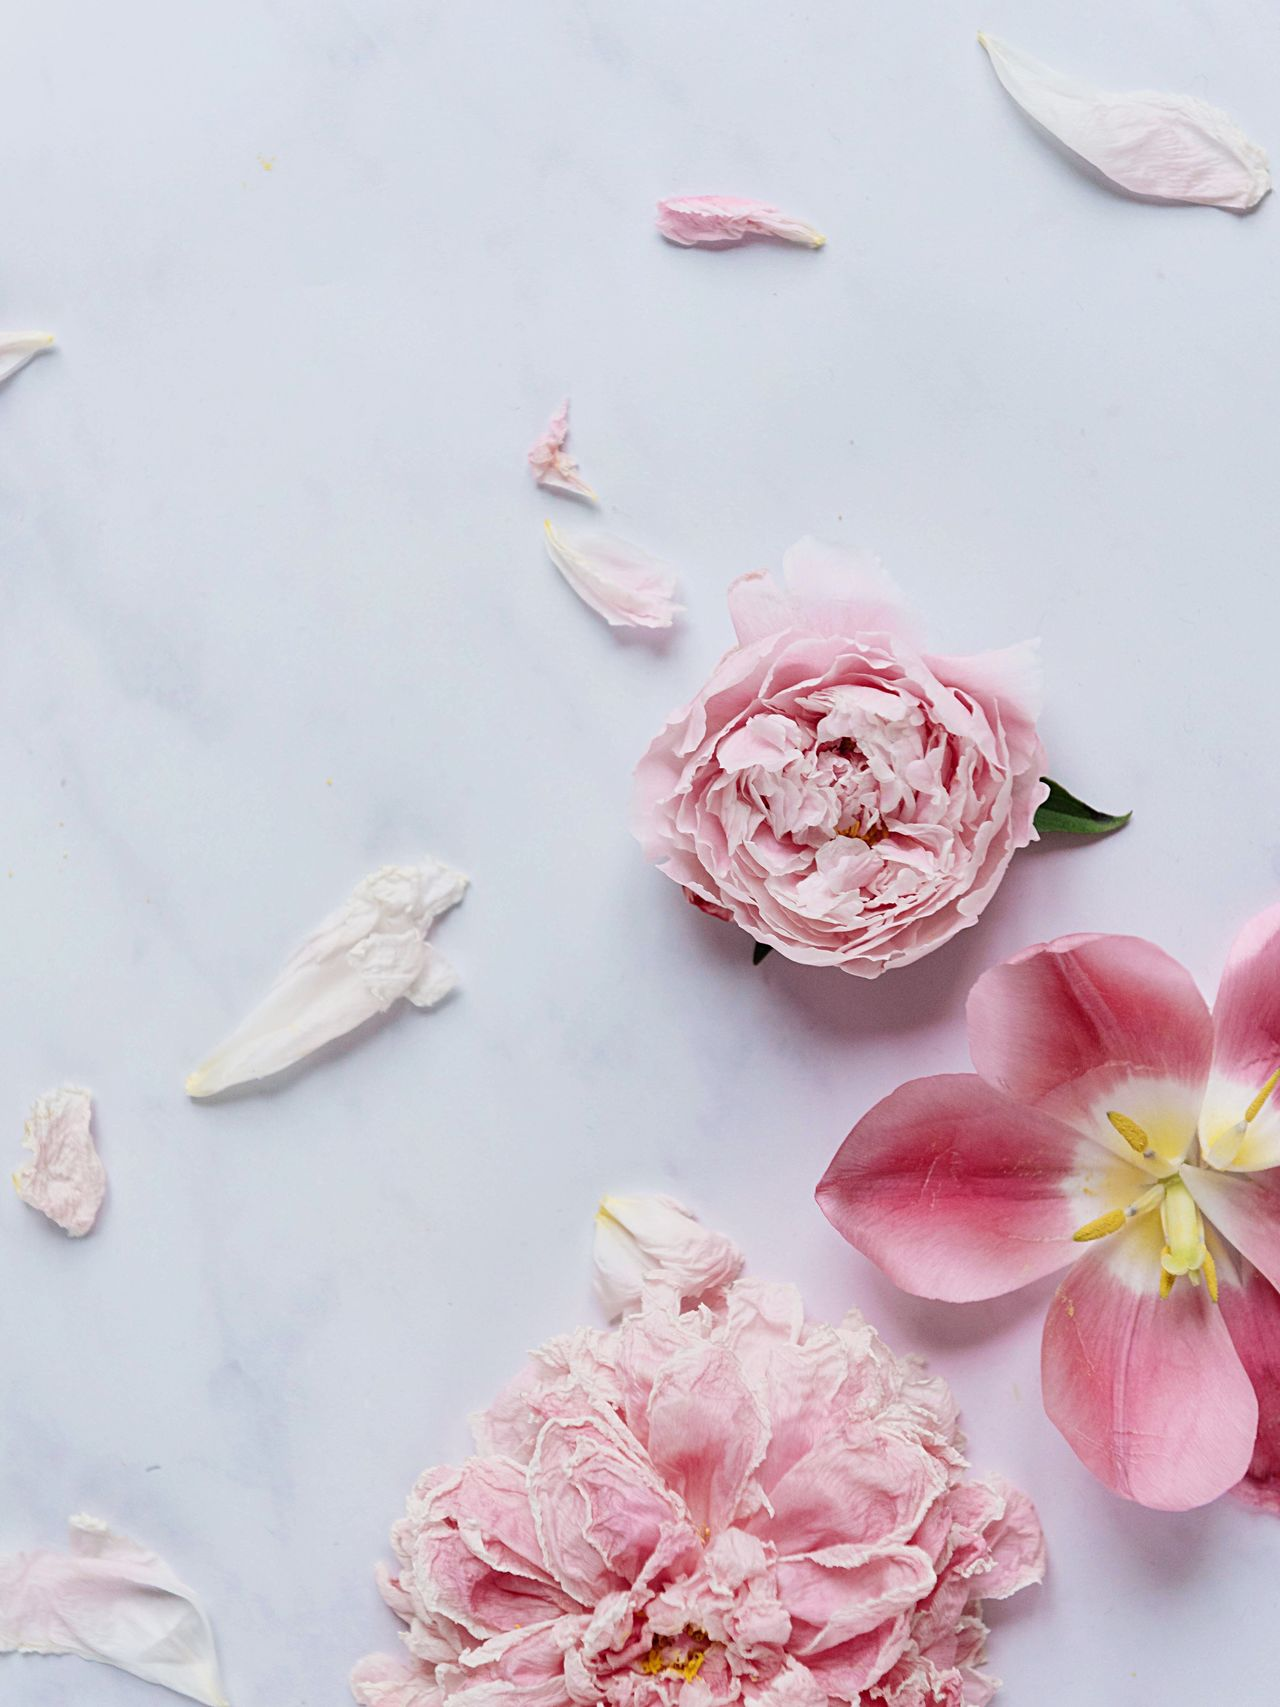 Flower Table Petal Rose - Flower Peony  Peony Flower High Angle View Pink Color Fragility Freshness Flower Head Beauty In Nature No People Nature Close-up Marble Table Marble Summer Faded Beauty Petals On The Table Flower Mess Faded Flower Heads Flower Head Close-up Selective Focus